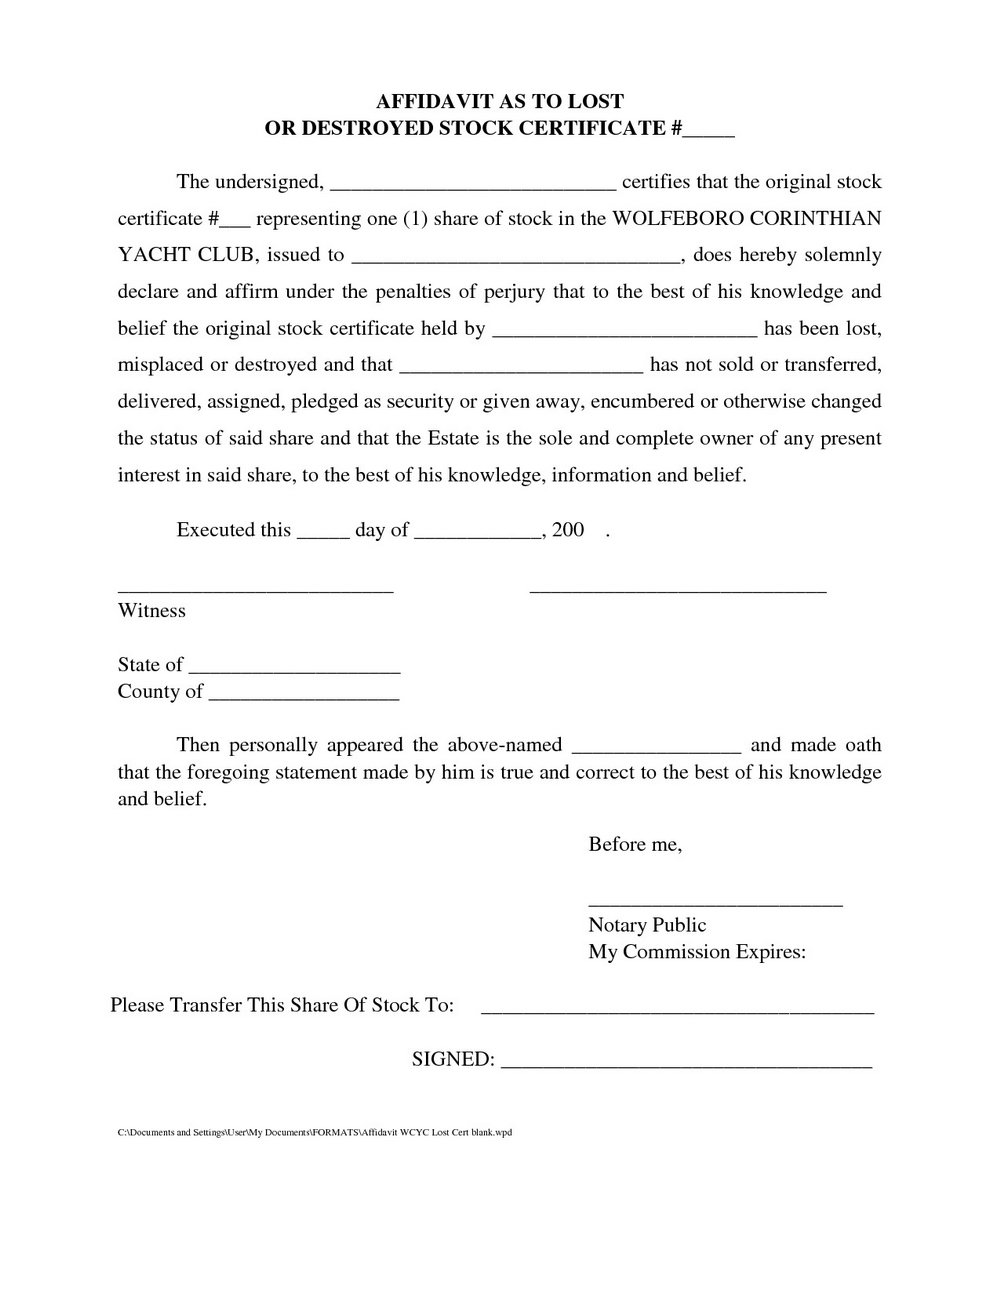 General Affidavit Template Qld - Templates #24838 | Resume